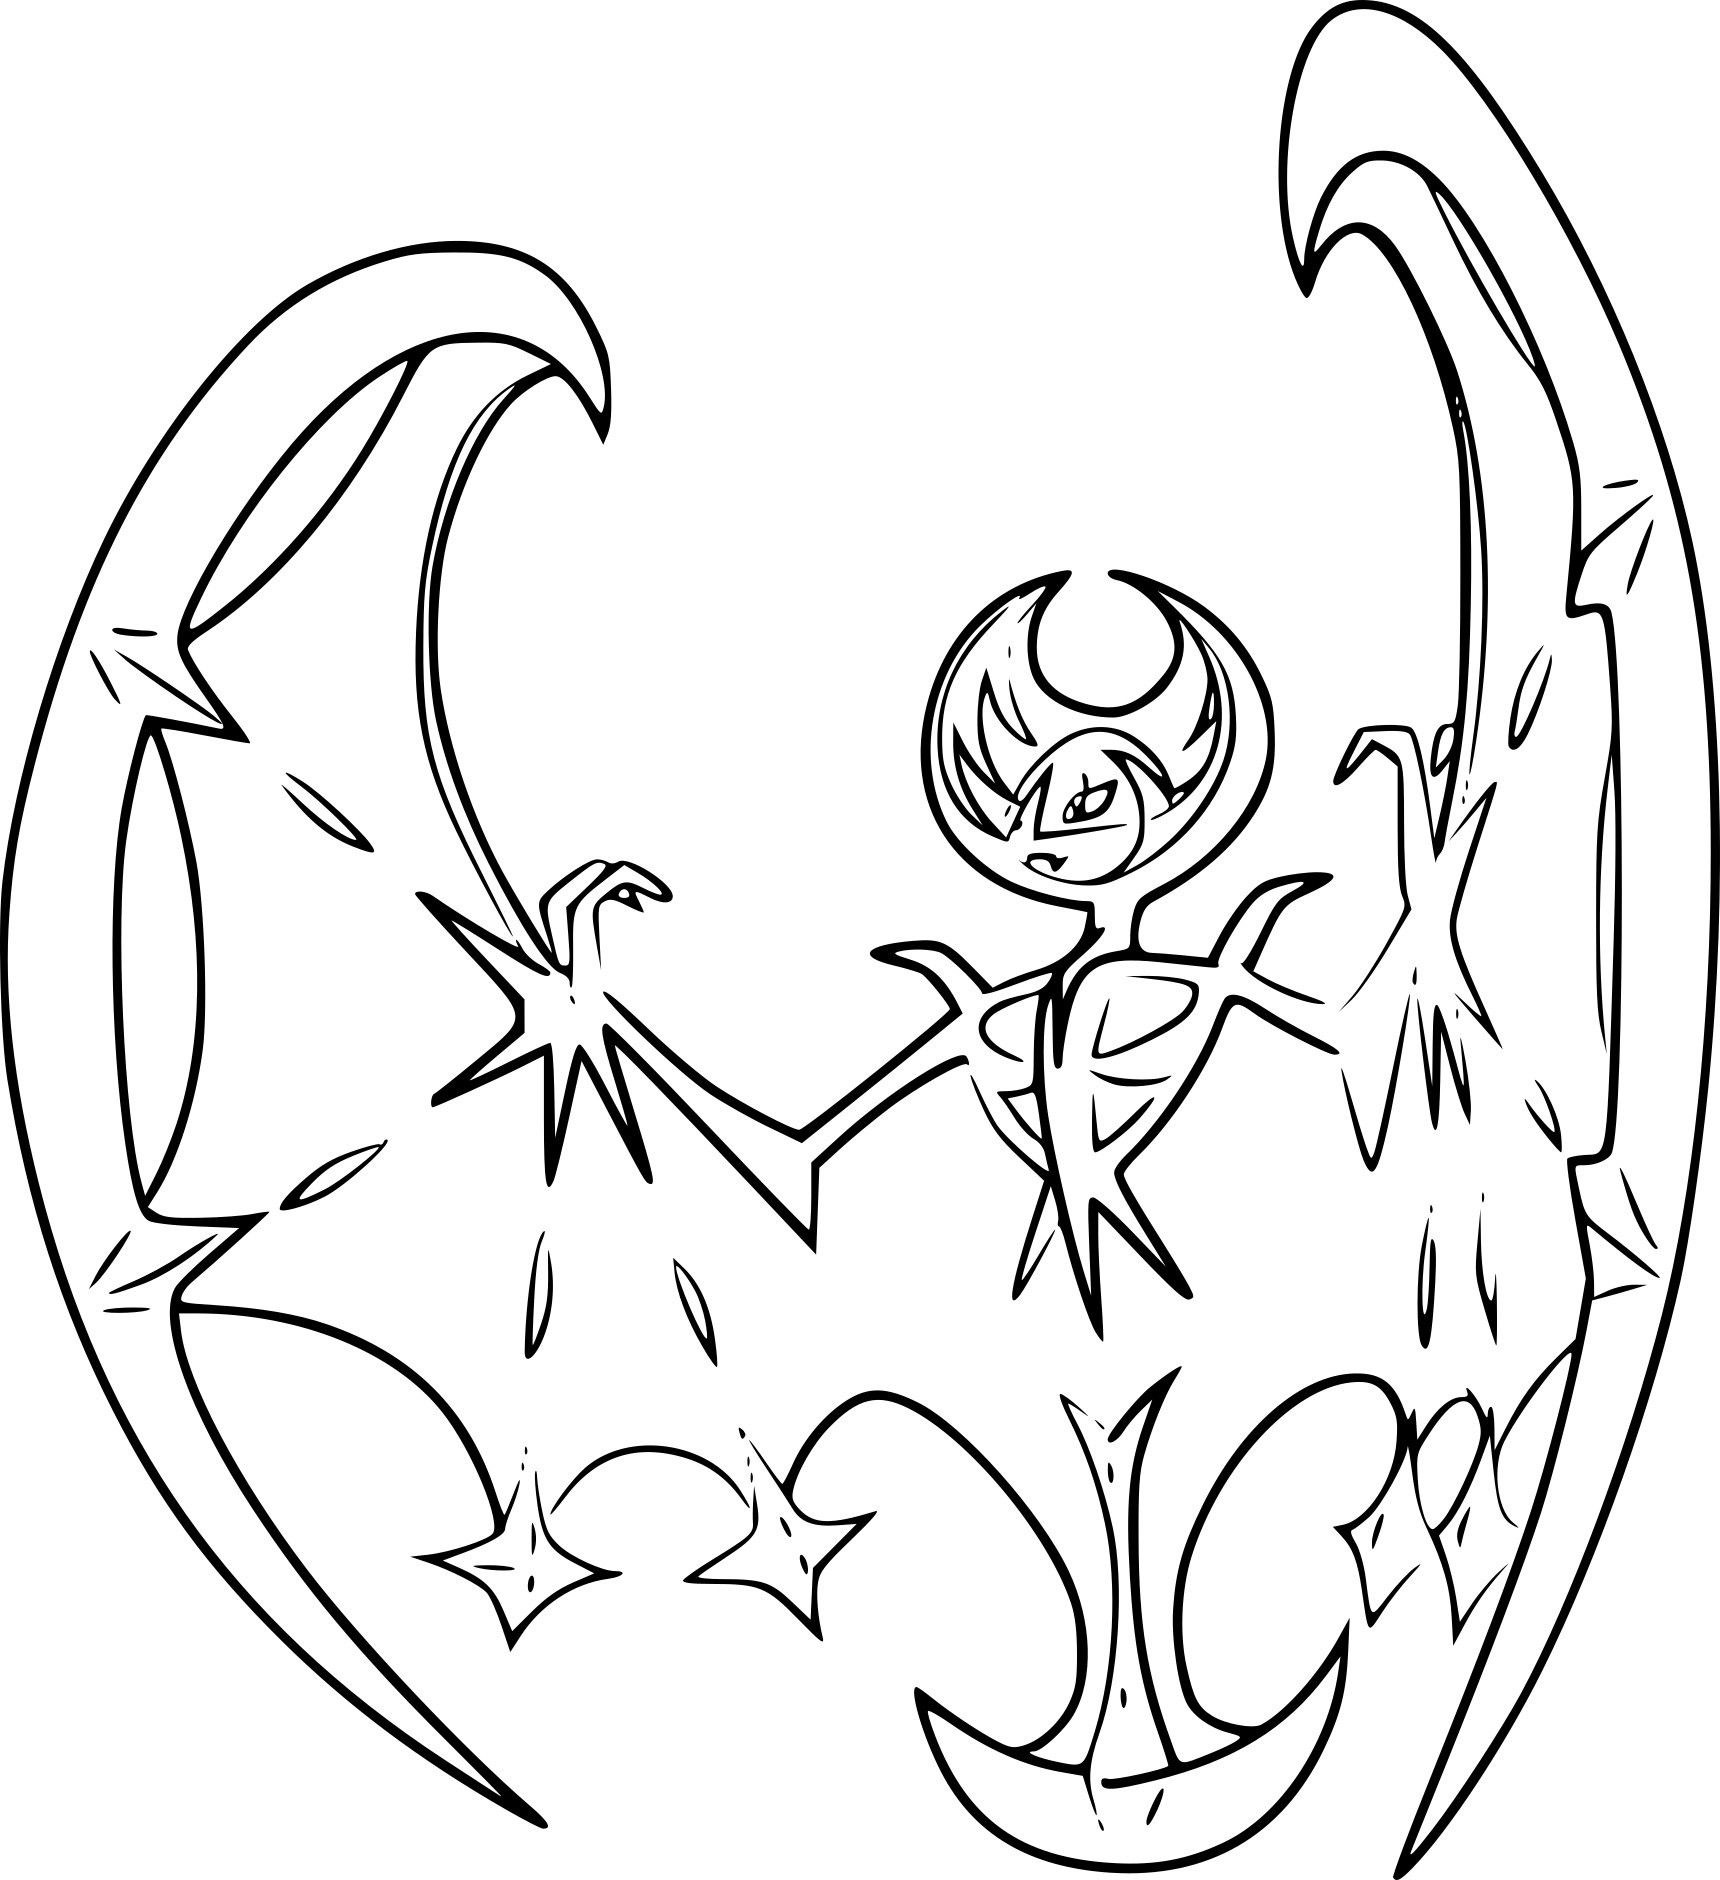 Pokemon Lunala Coloring Pages Through The Thousands Of Images Online With Regards To Pokemon Luna Pokemon Coloring Pages Pokemon Coloring Moon Coloring Pages